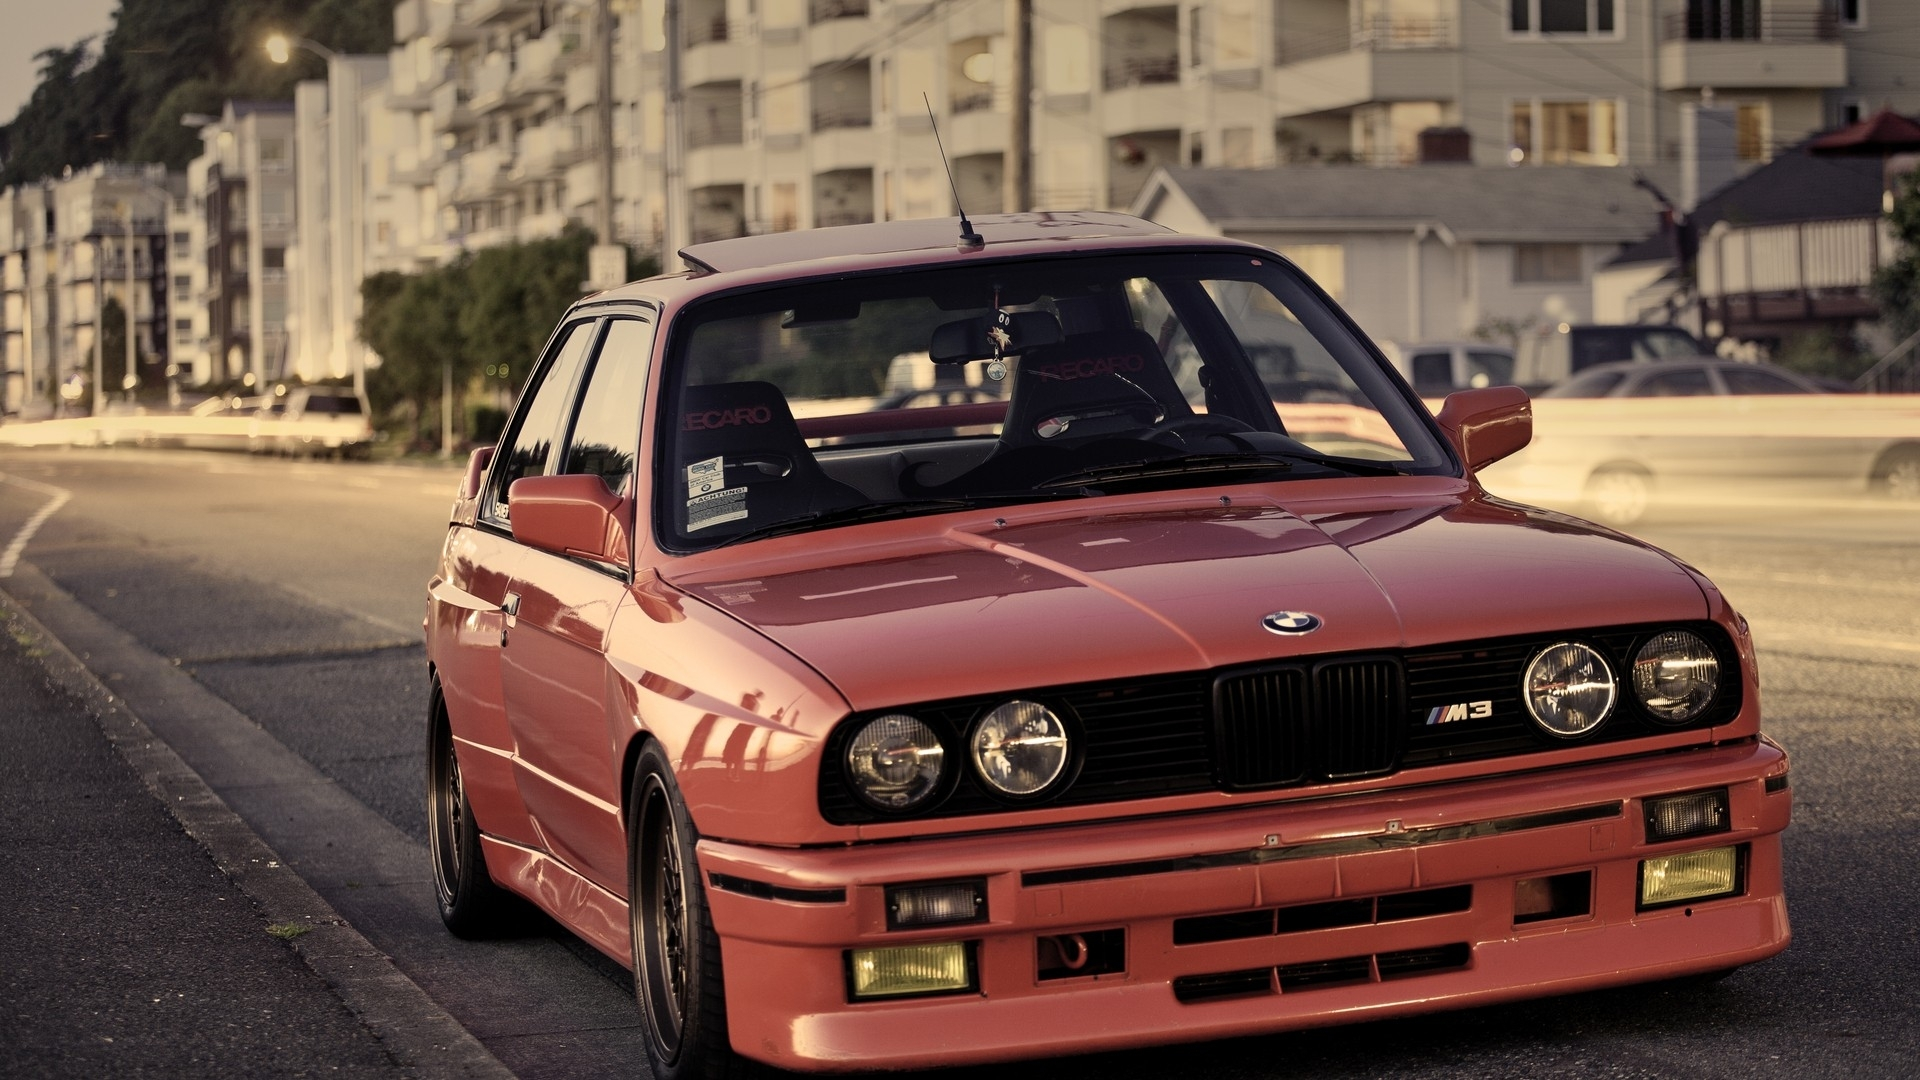 racing bmw m3 sport cars bmw e30 luxury sport cars Wallpaper download 1920x1080